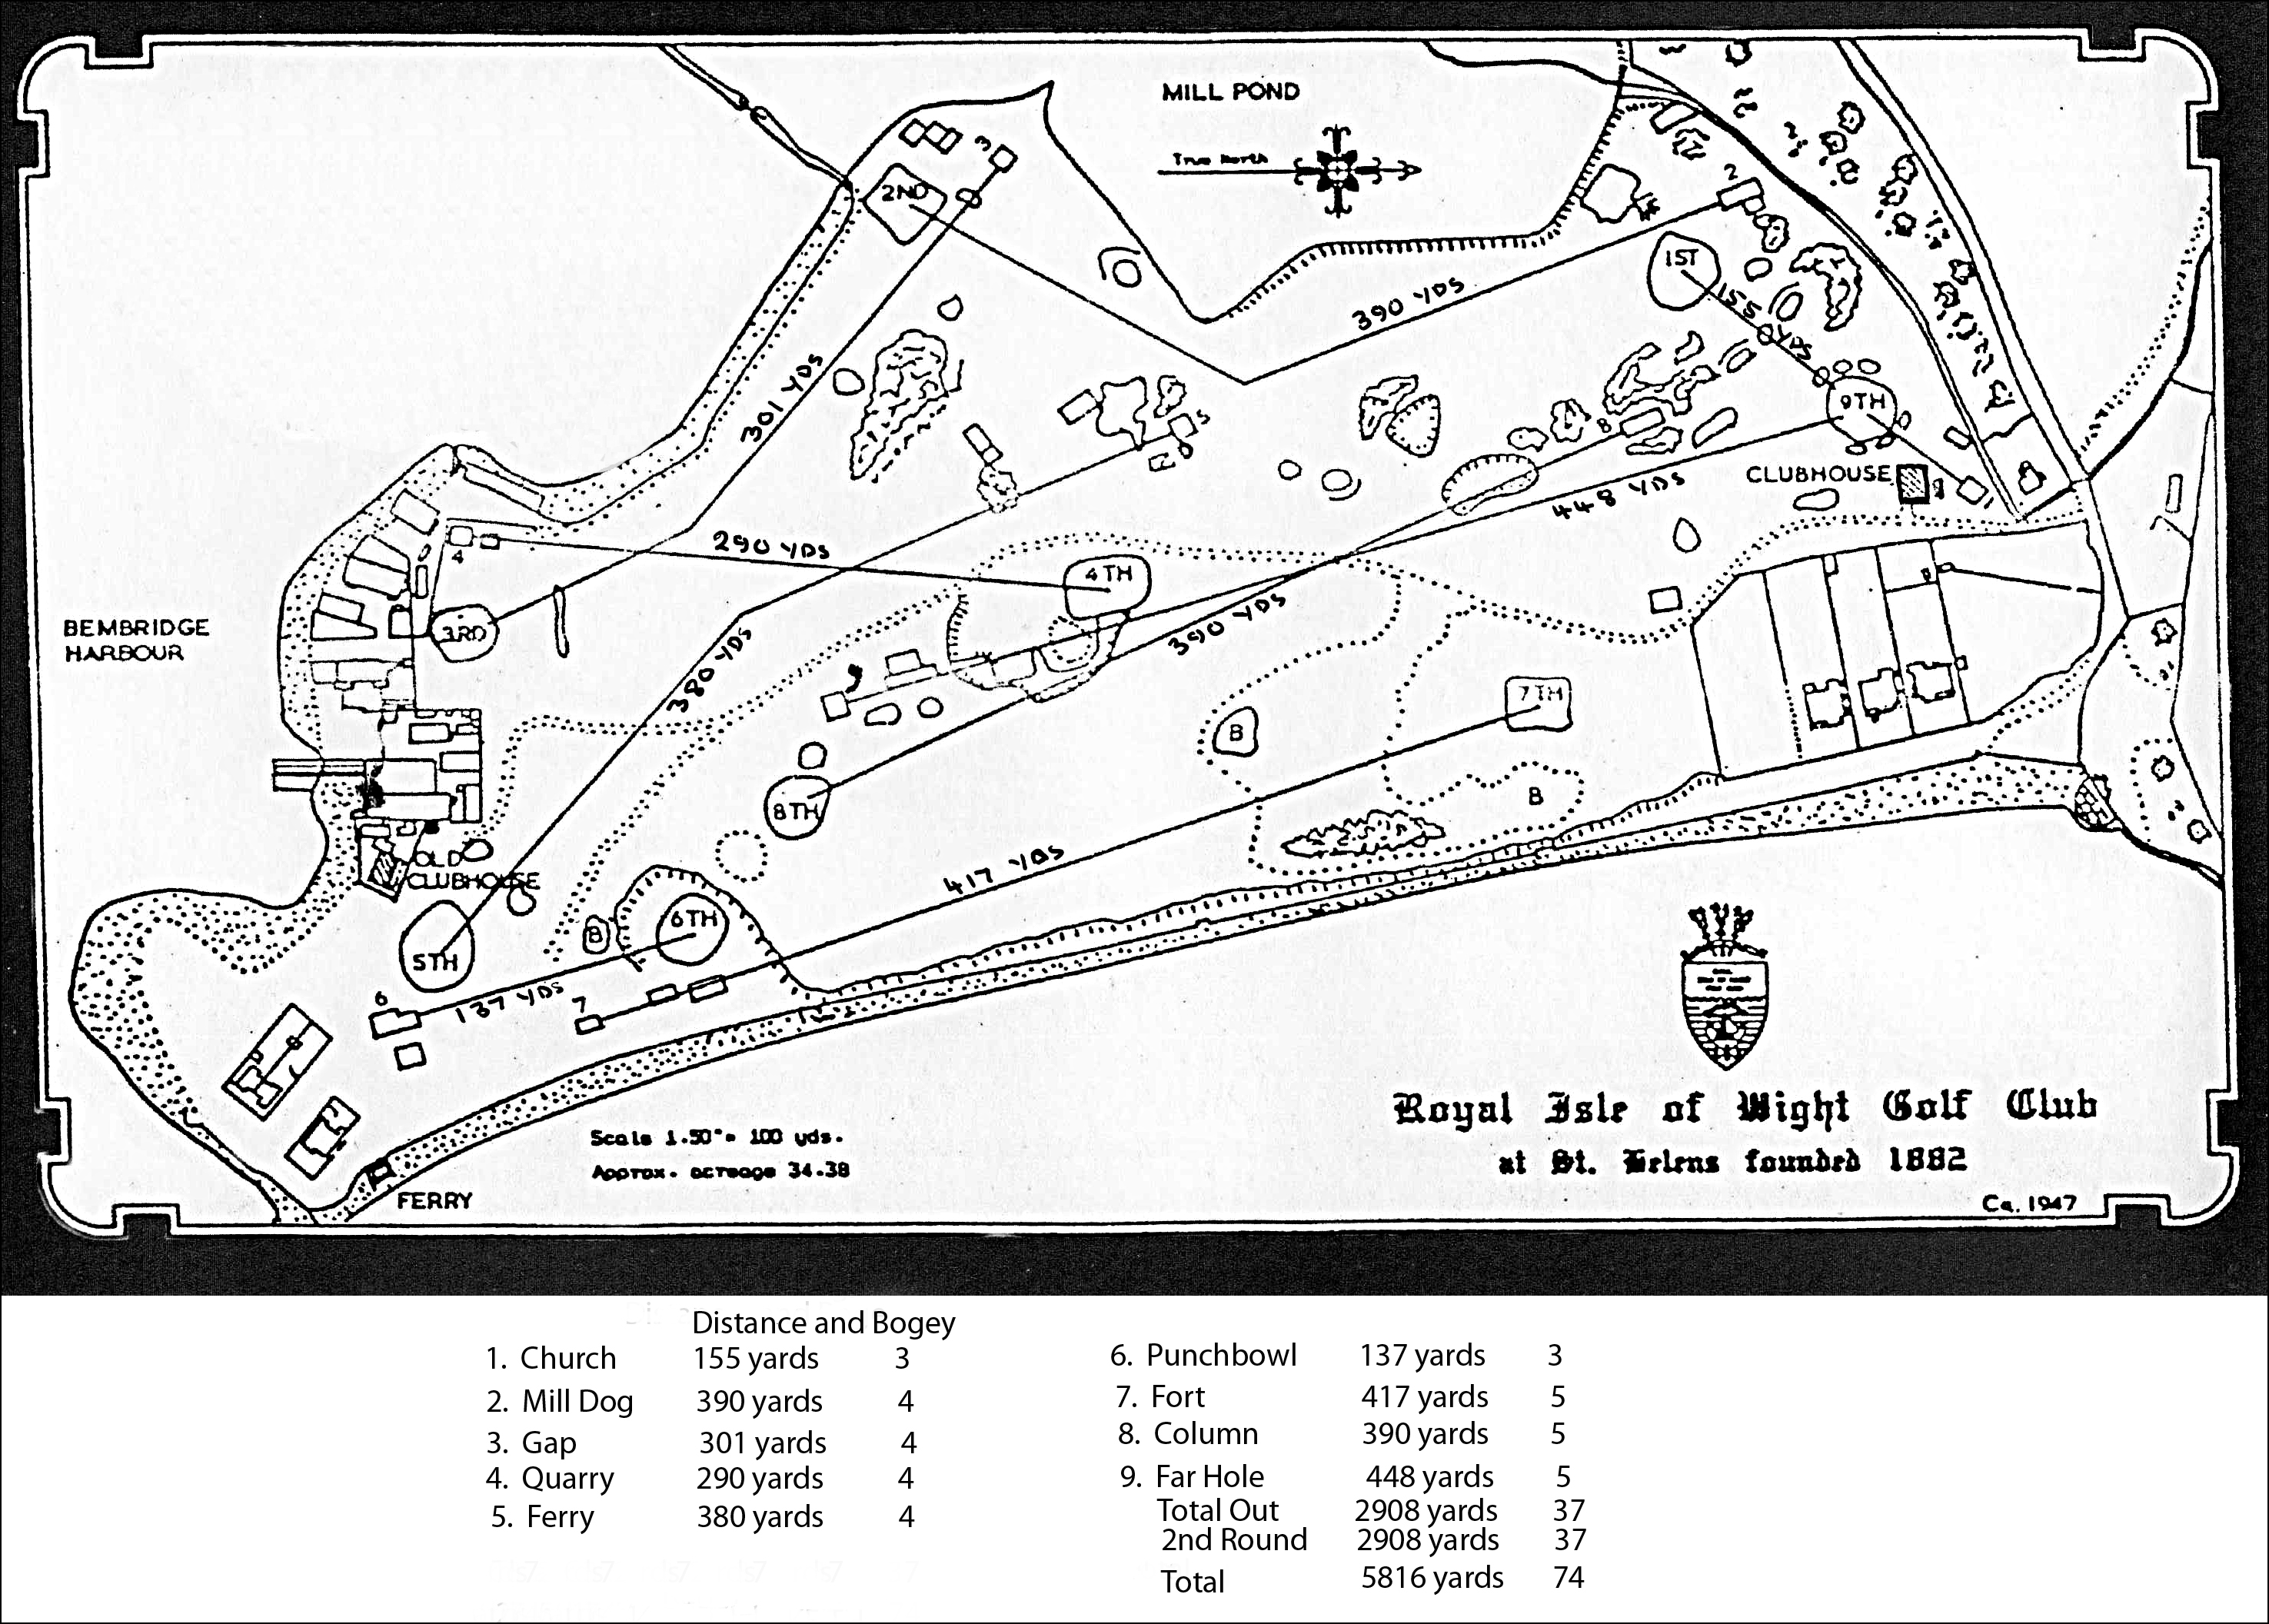 History The Royal Isle Of Wight Golf Club